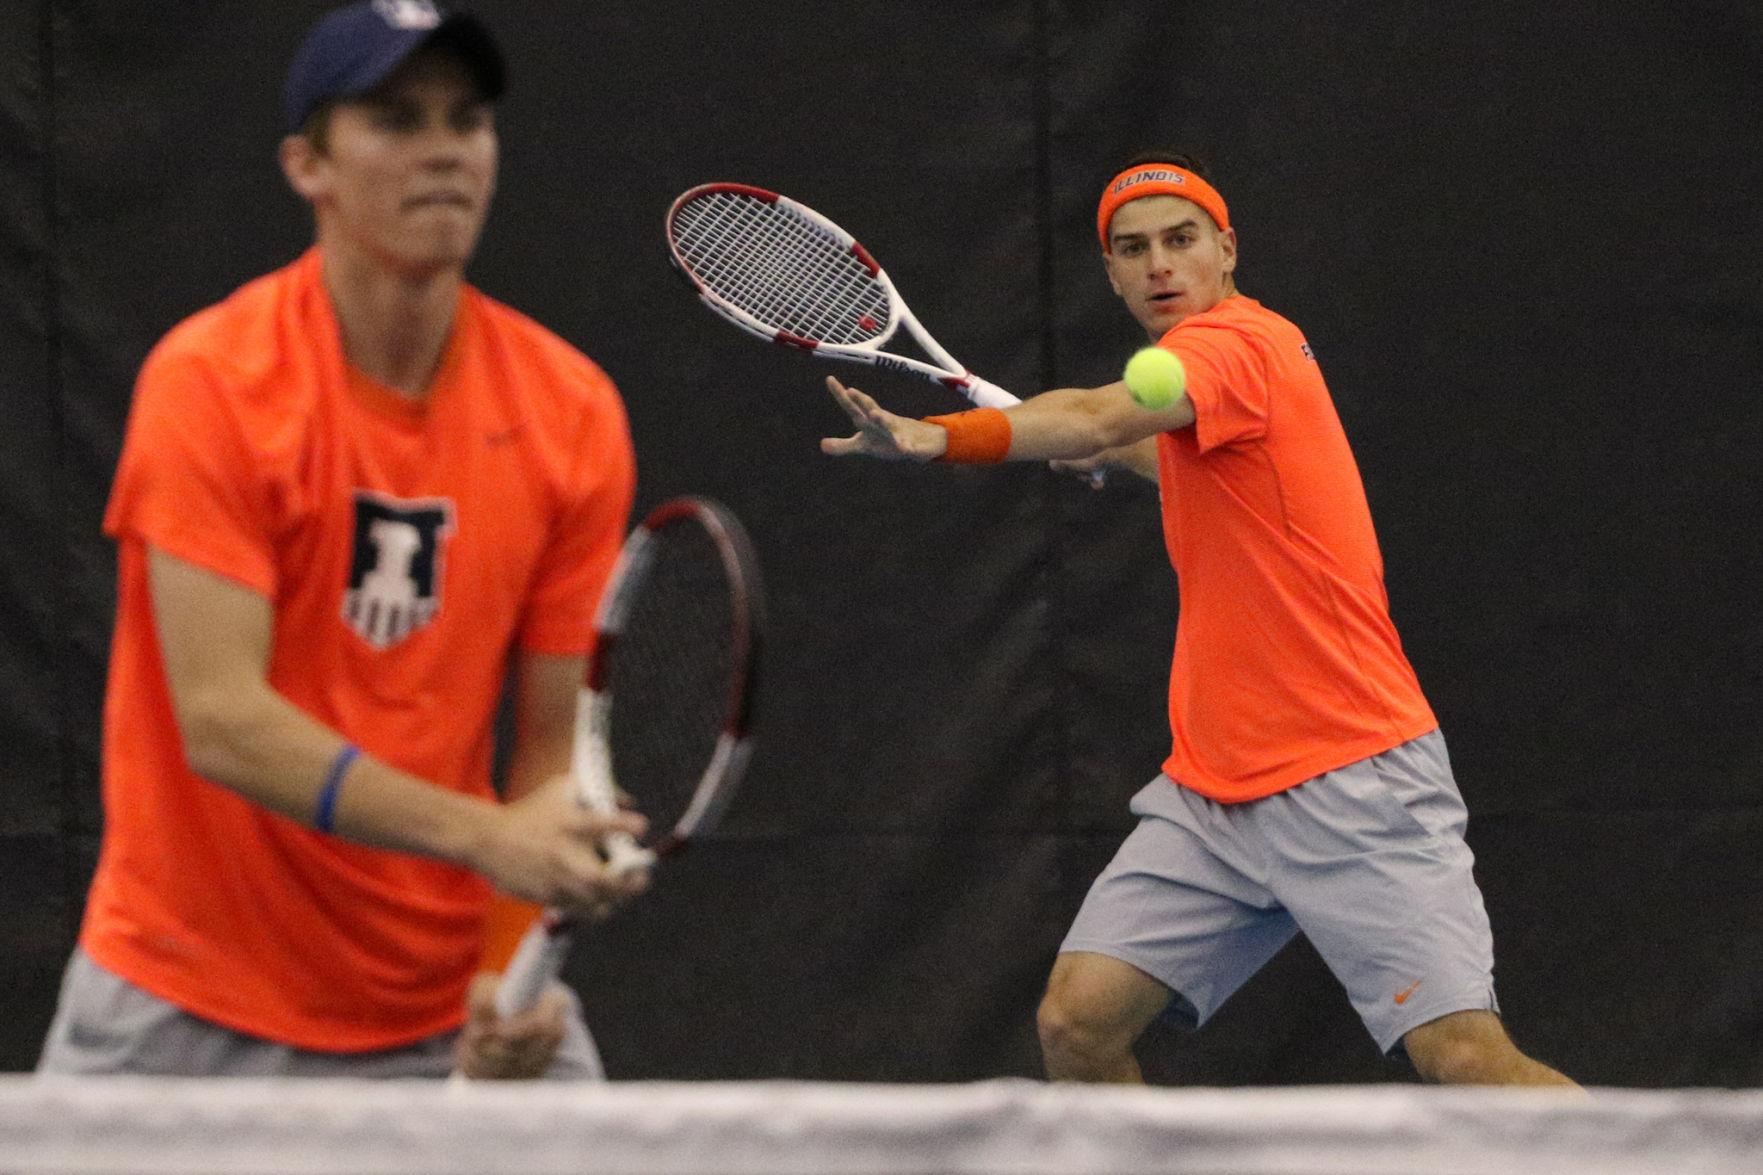 The+Illinois+men%E2%80%99s+tennis+team+carries+a+perfect+Big+Ten+record+and+the+top+spot+in+the+conference+into+a+weekend+at+home+against+Iowa+and+Nebraska.%C2%A0